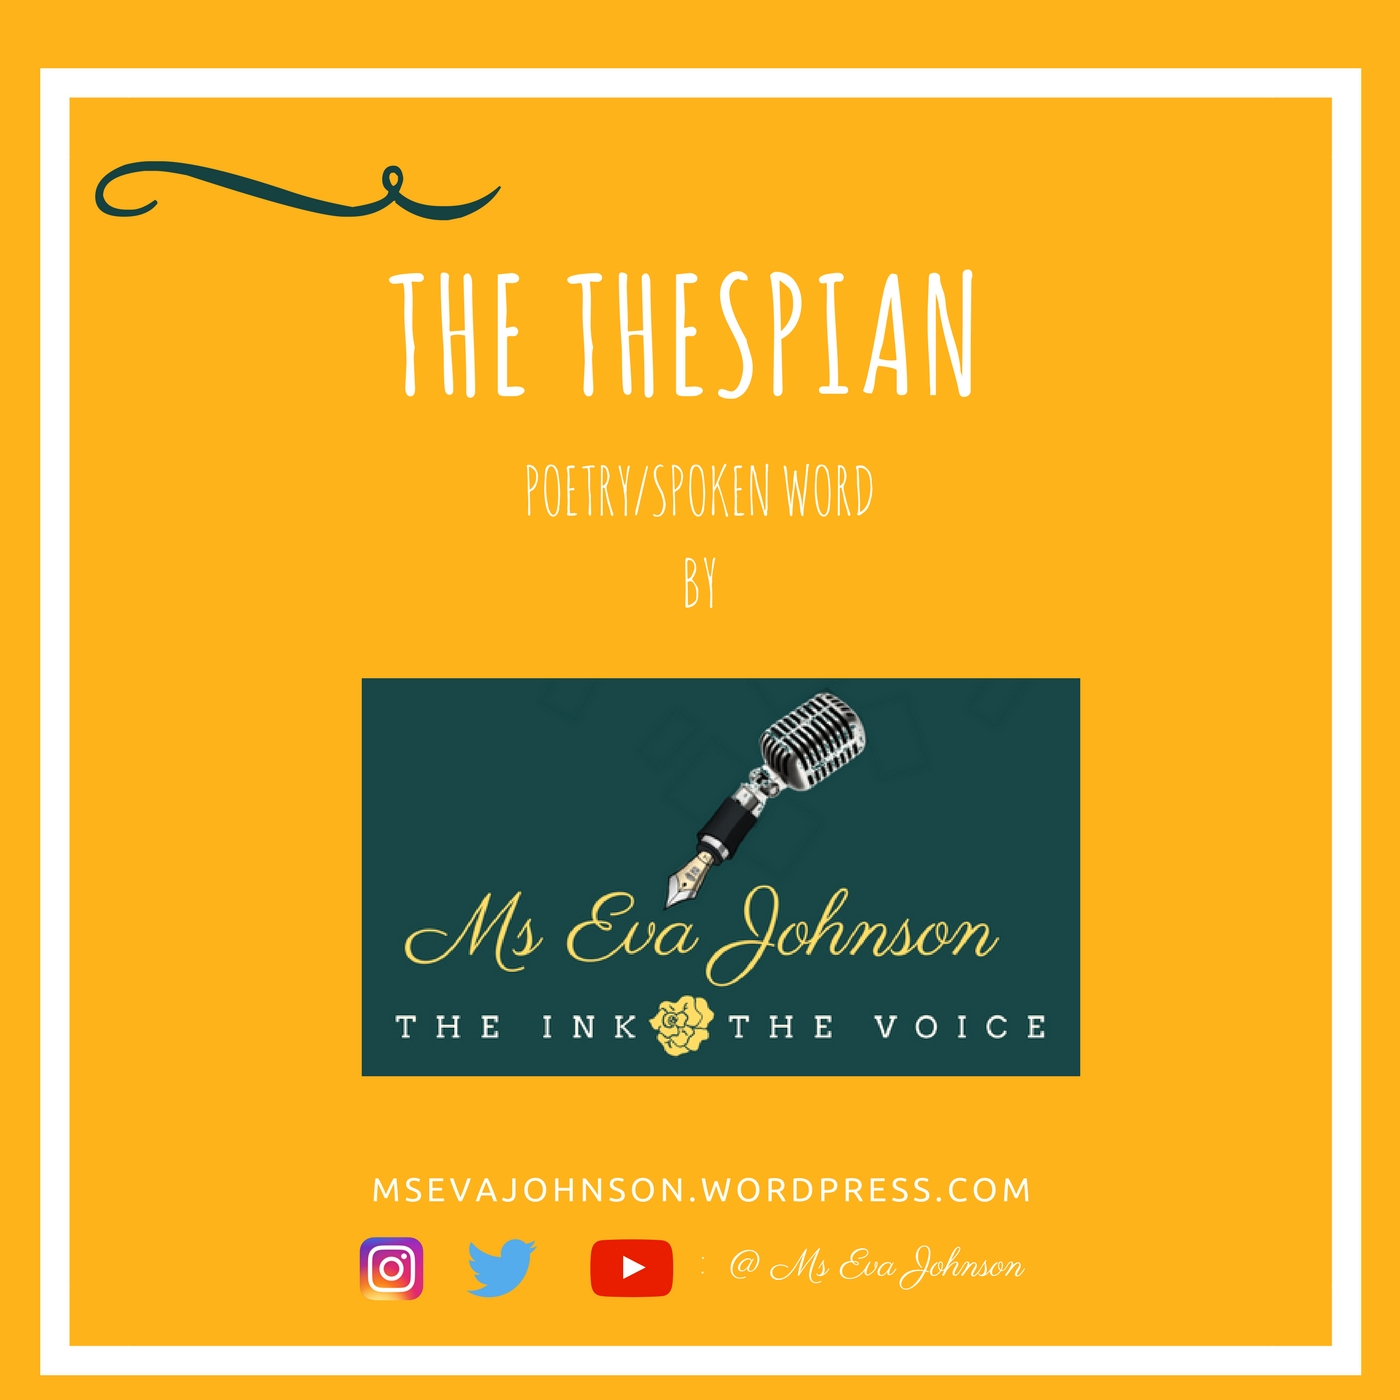 The Thespian (pg 1)